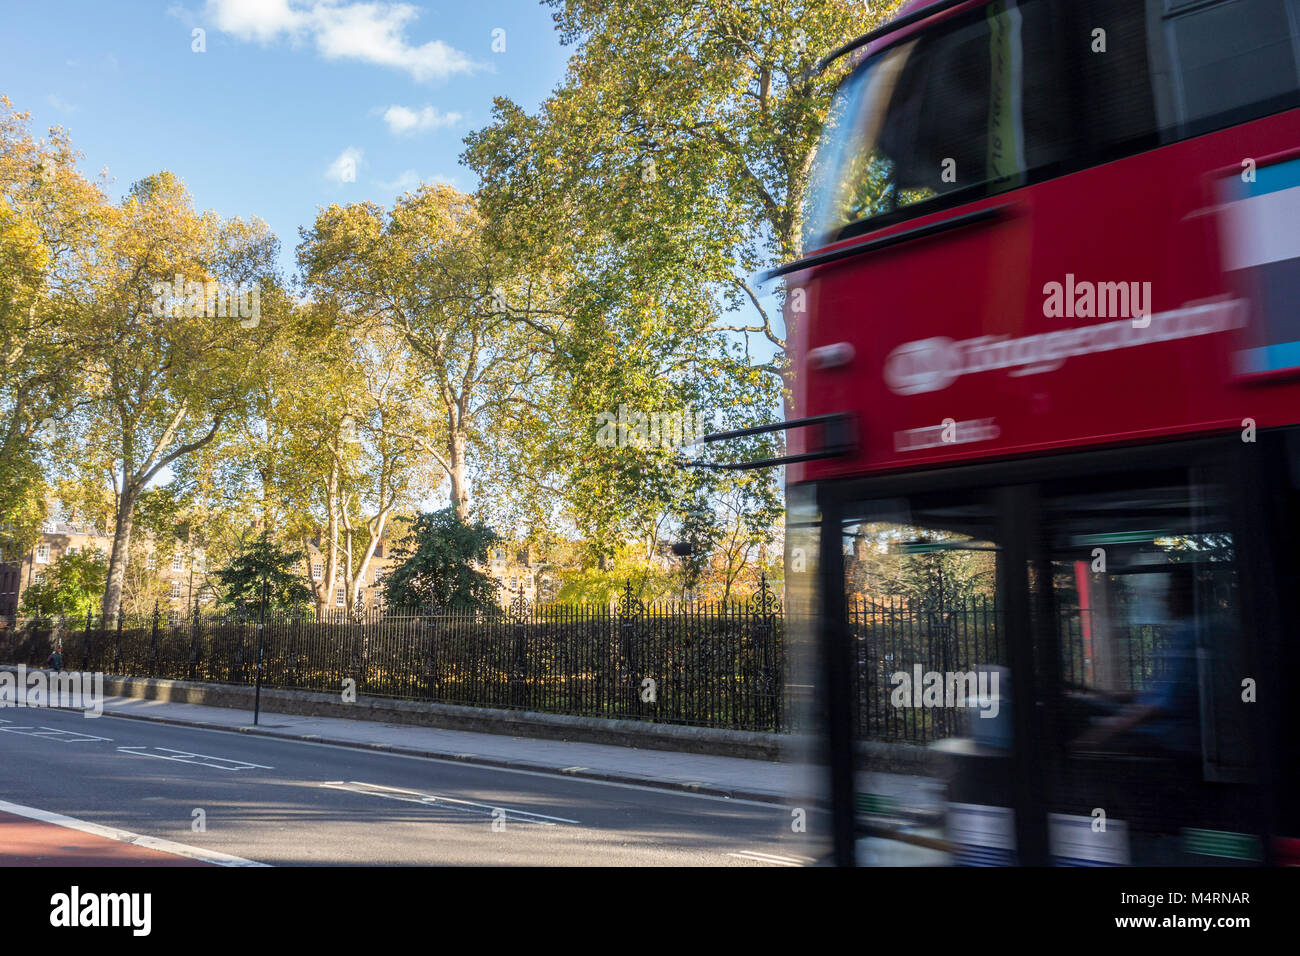 Red London bus on Theobalds Road in front of trees in Grays Inn Gardens, London, UK - Stock Image